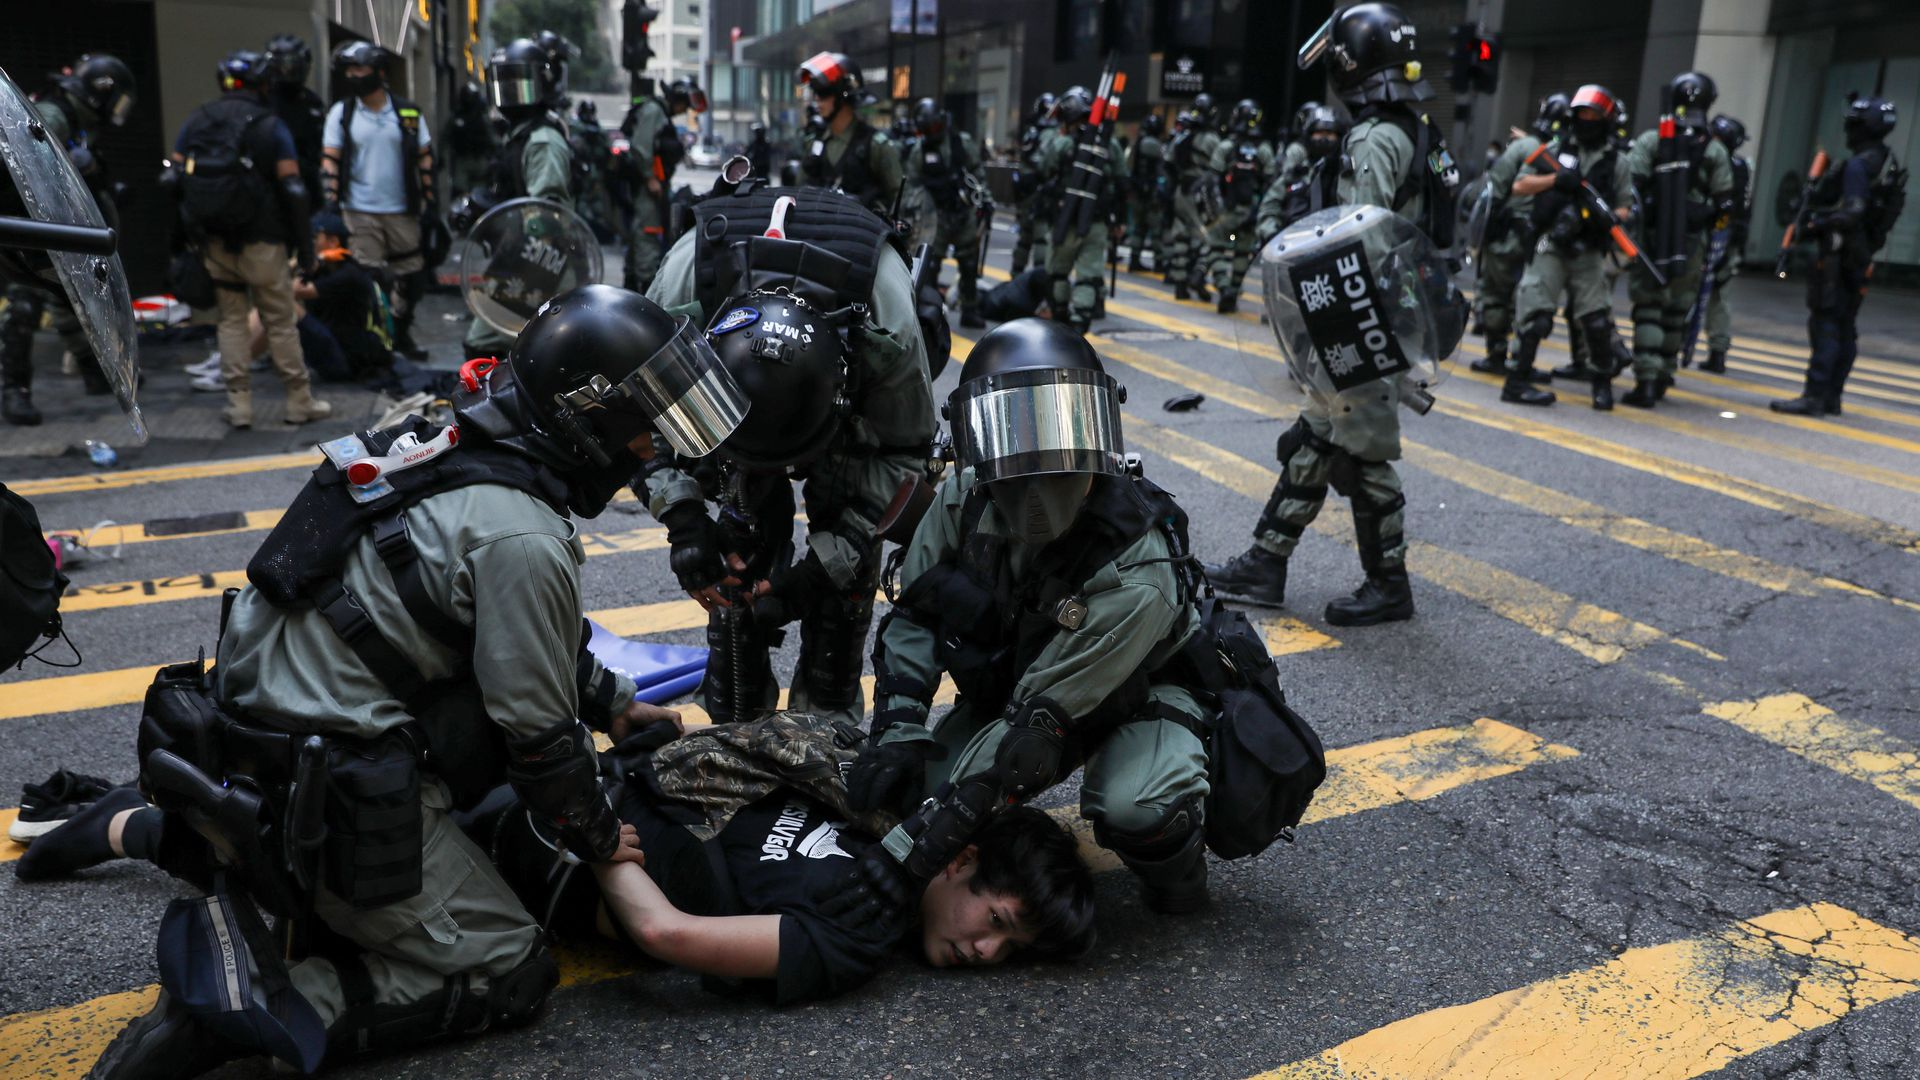 Days-long protests paralyze Hong Kong: What you need to know